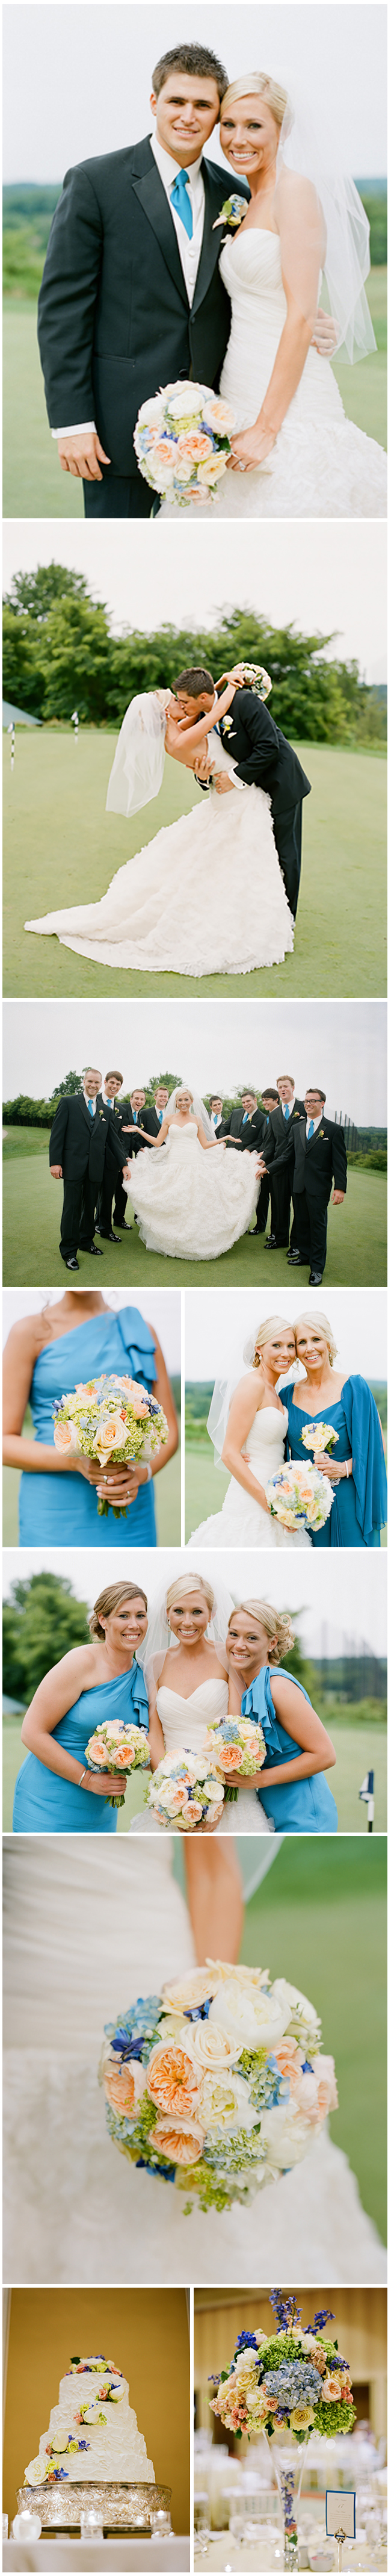 Prettily perched on Lansdowne's rolling green golf course, this simple yet stylish wedding was a mixture of blues, yellows, peaches and creams.  With clean, handcut bouquets in a classic style and soft, elevated designs for the reception, florals added just the perfect pop of color to coordinate with the classic whites of the linens and chairs.  Elegant details and clean lines created a seamless aesthetic for a perfect country club-style  affair.  Images by Kate Headley.